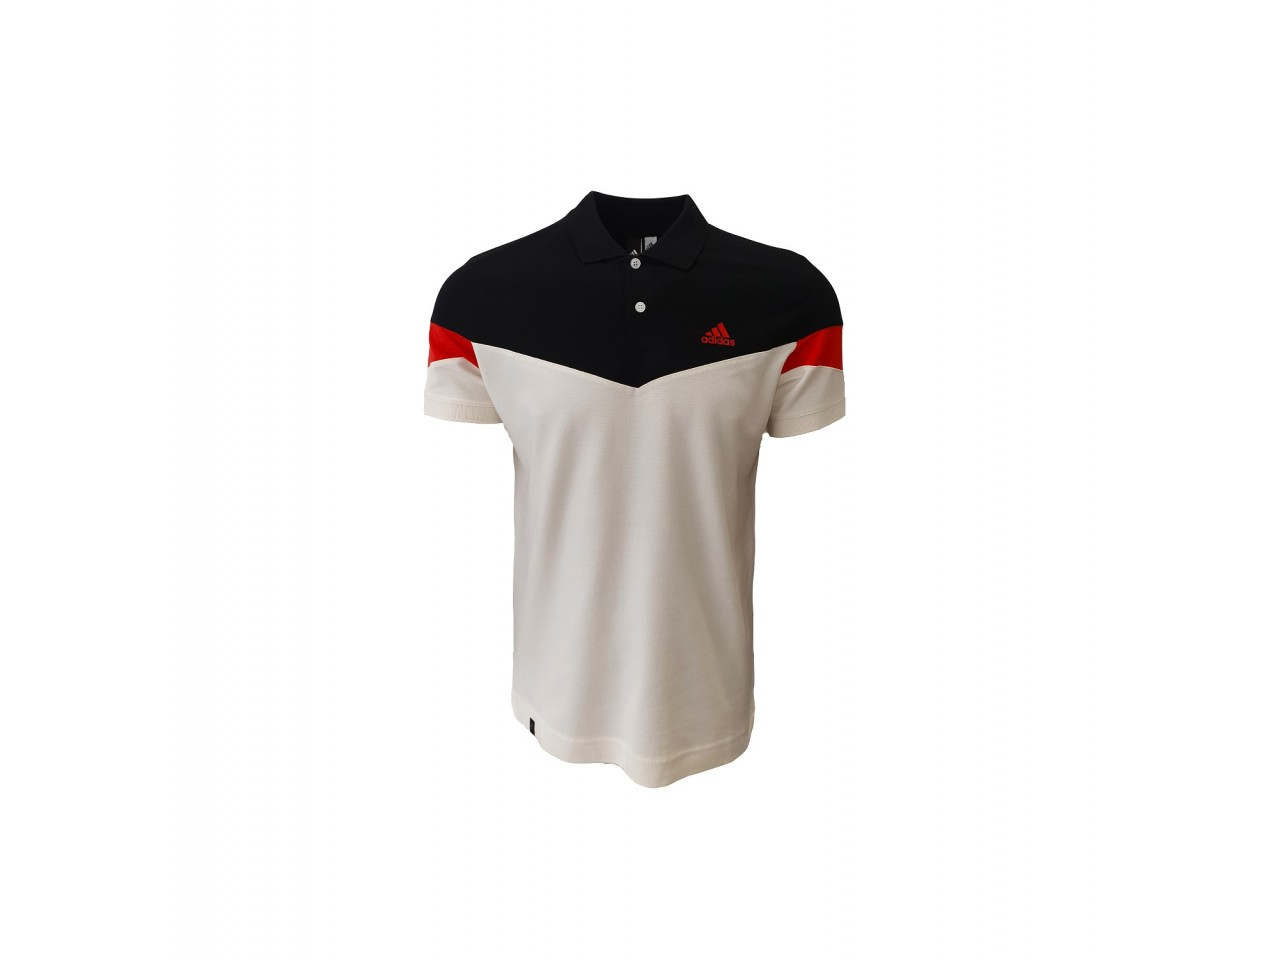 Adidas Polo T-shirt Black Red